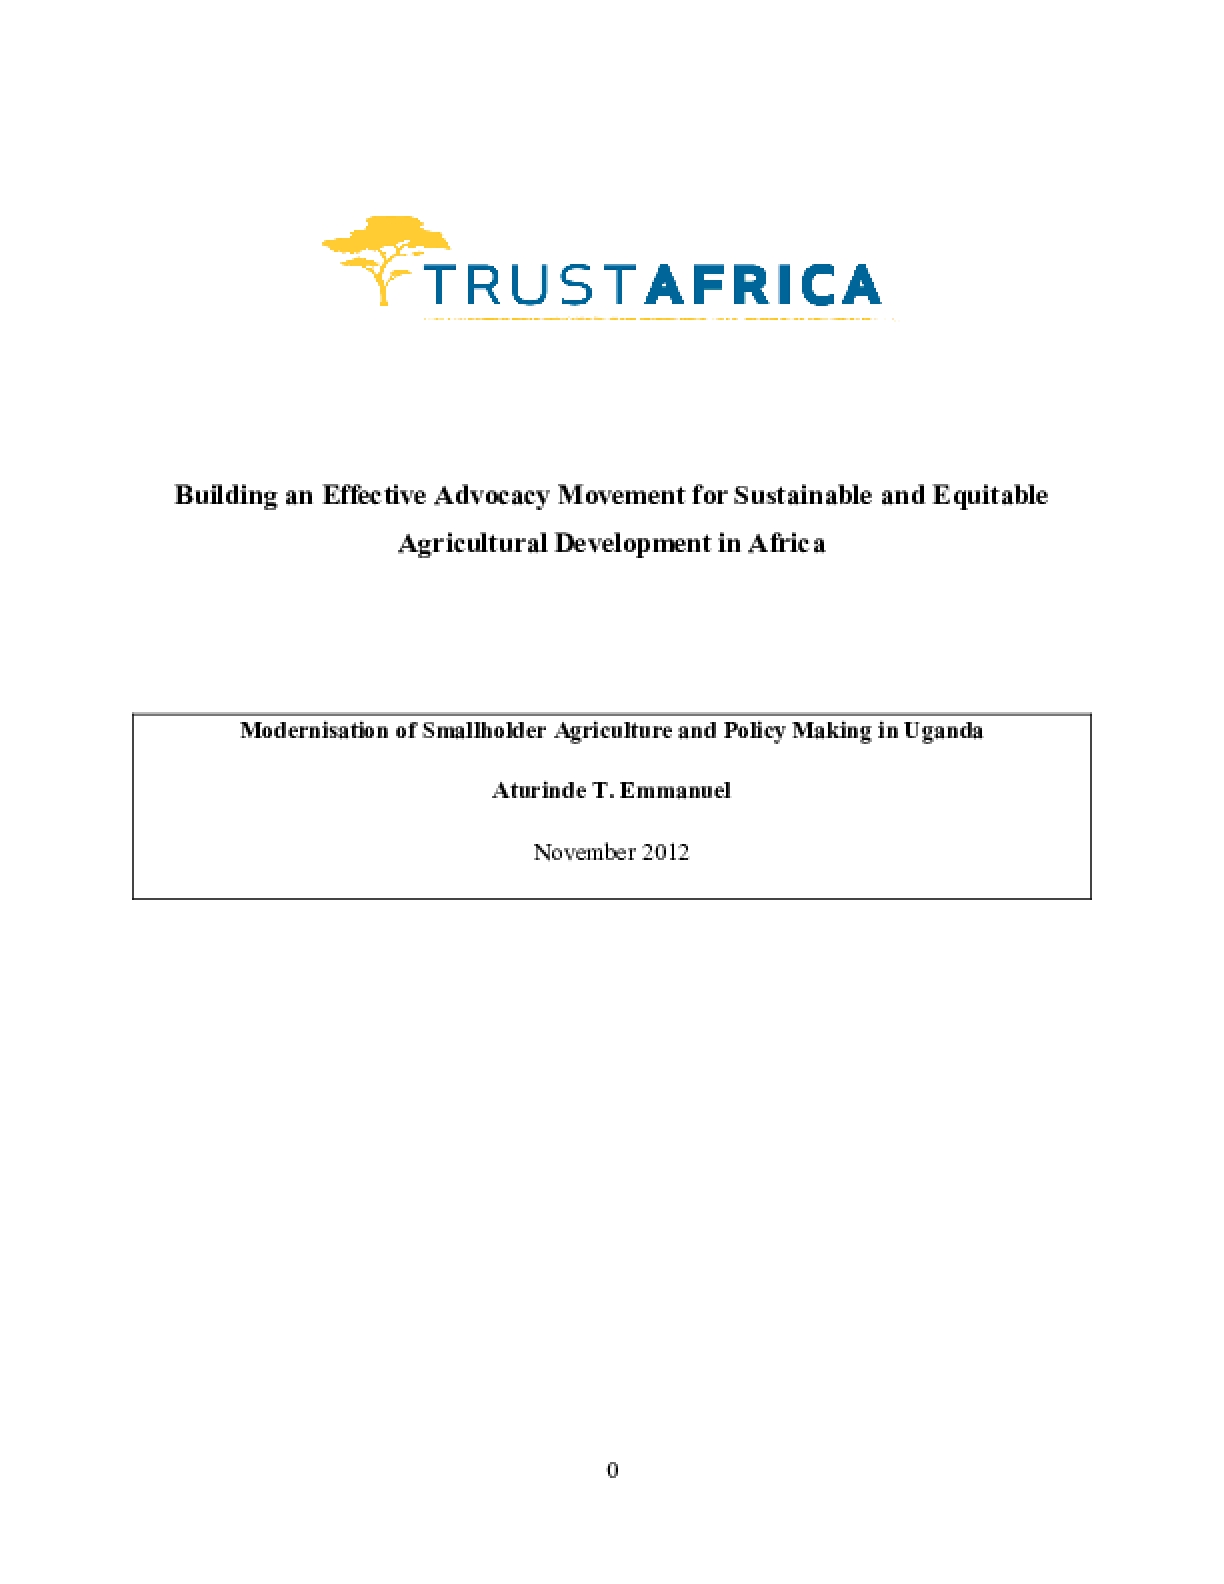 Building an Effective Advocacy Movement for Sustainable and Equitable Agricultural Development in Africa: Modernisation of Smallholder Agriculture and Policy Making in Uganda